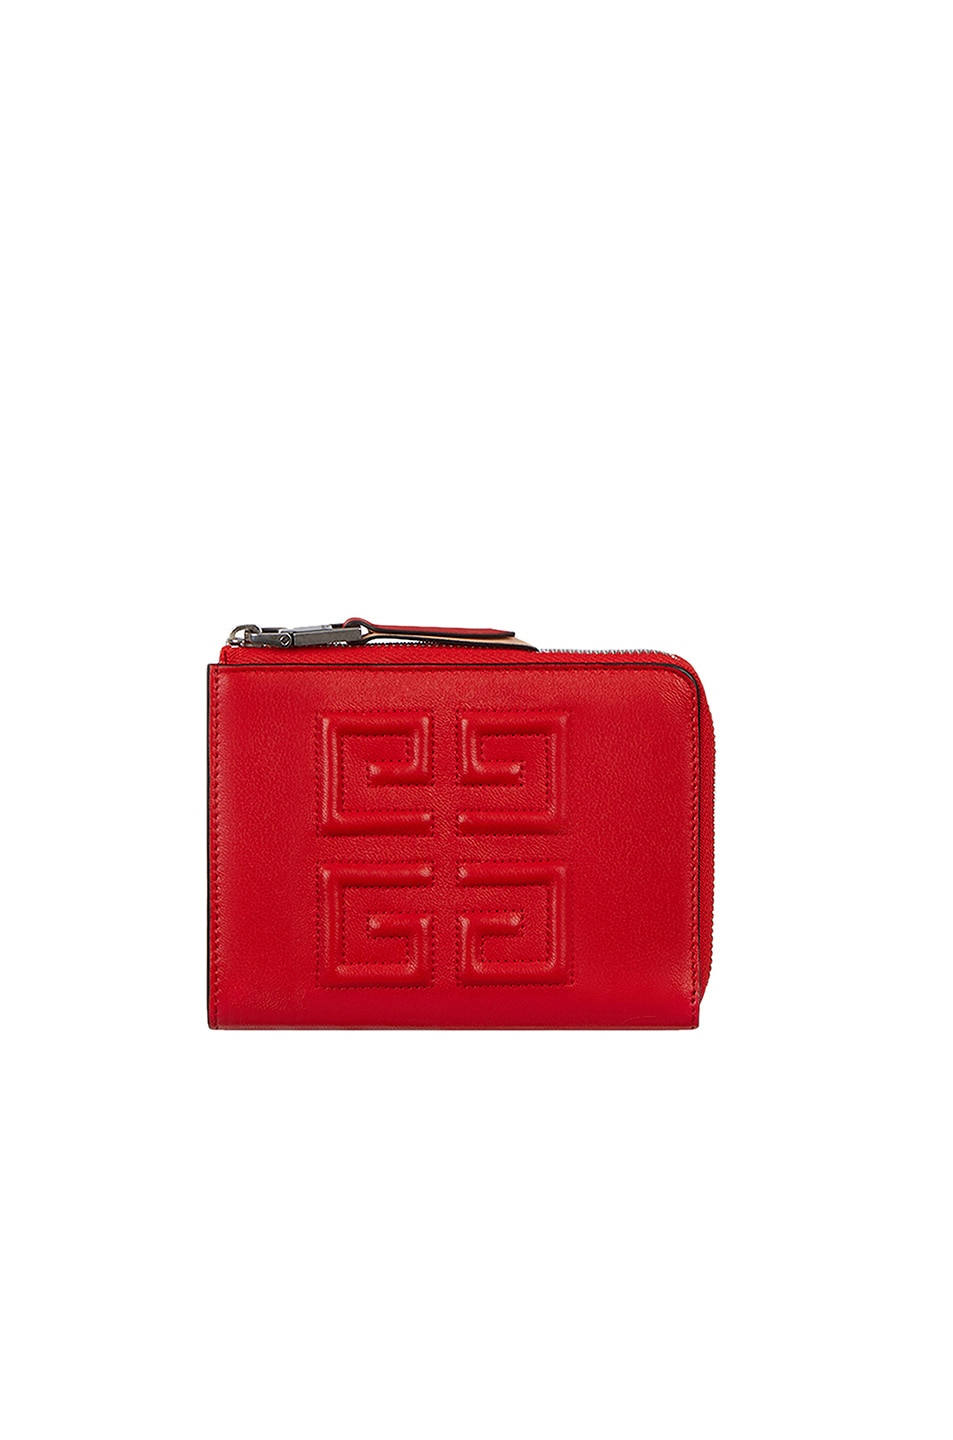 Image 1 of Givenchy Medium Emblem Zip Wallet in Poppy Red